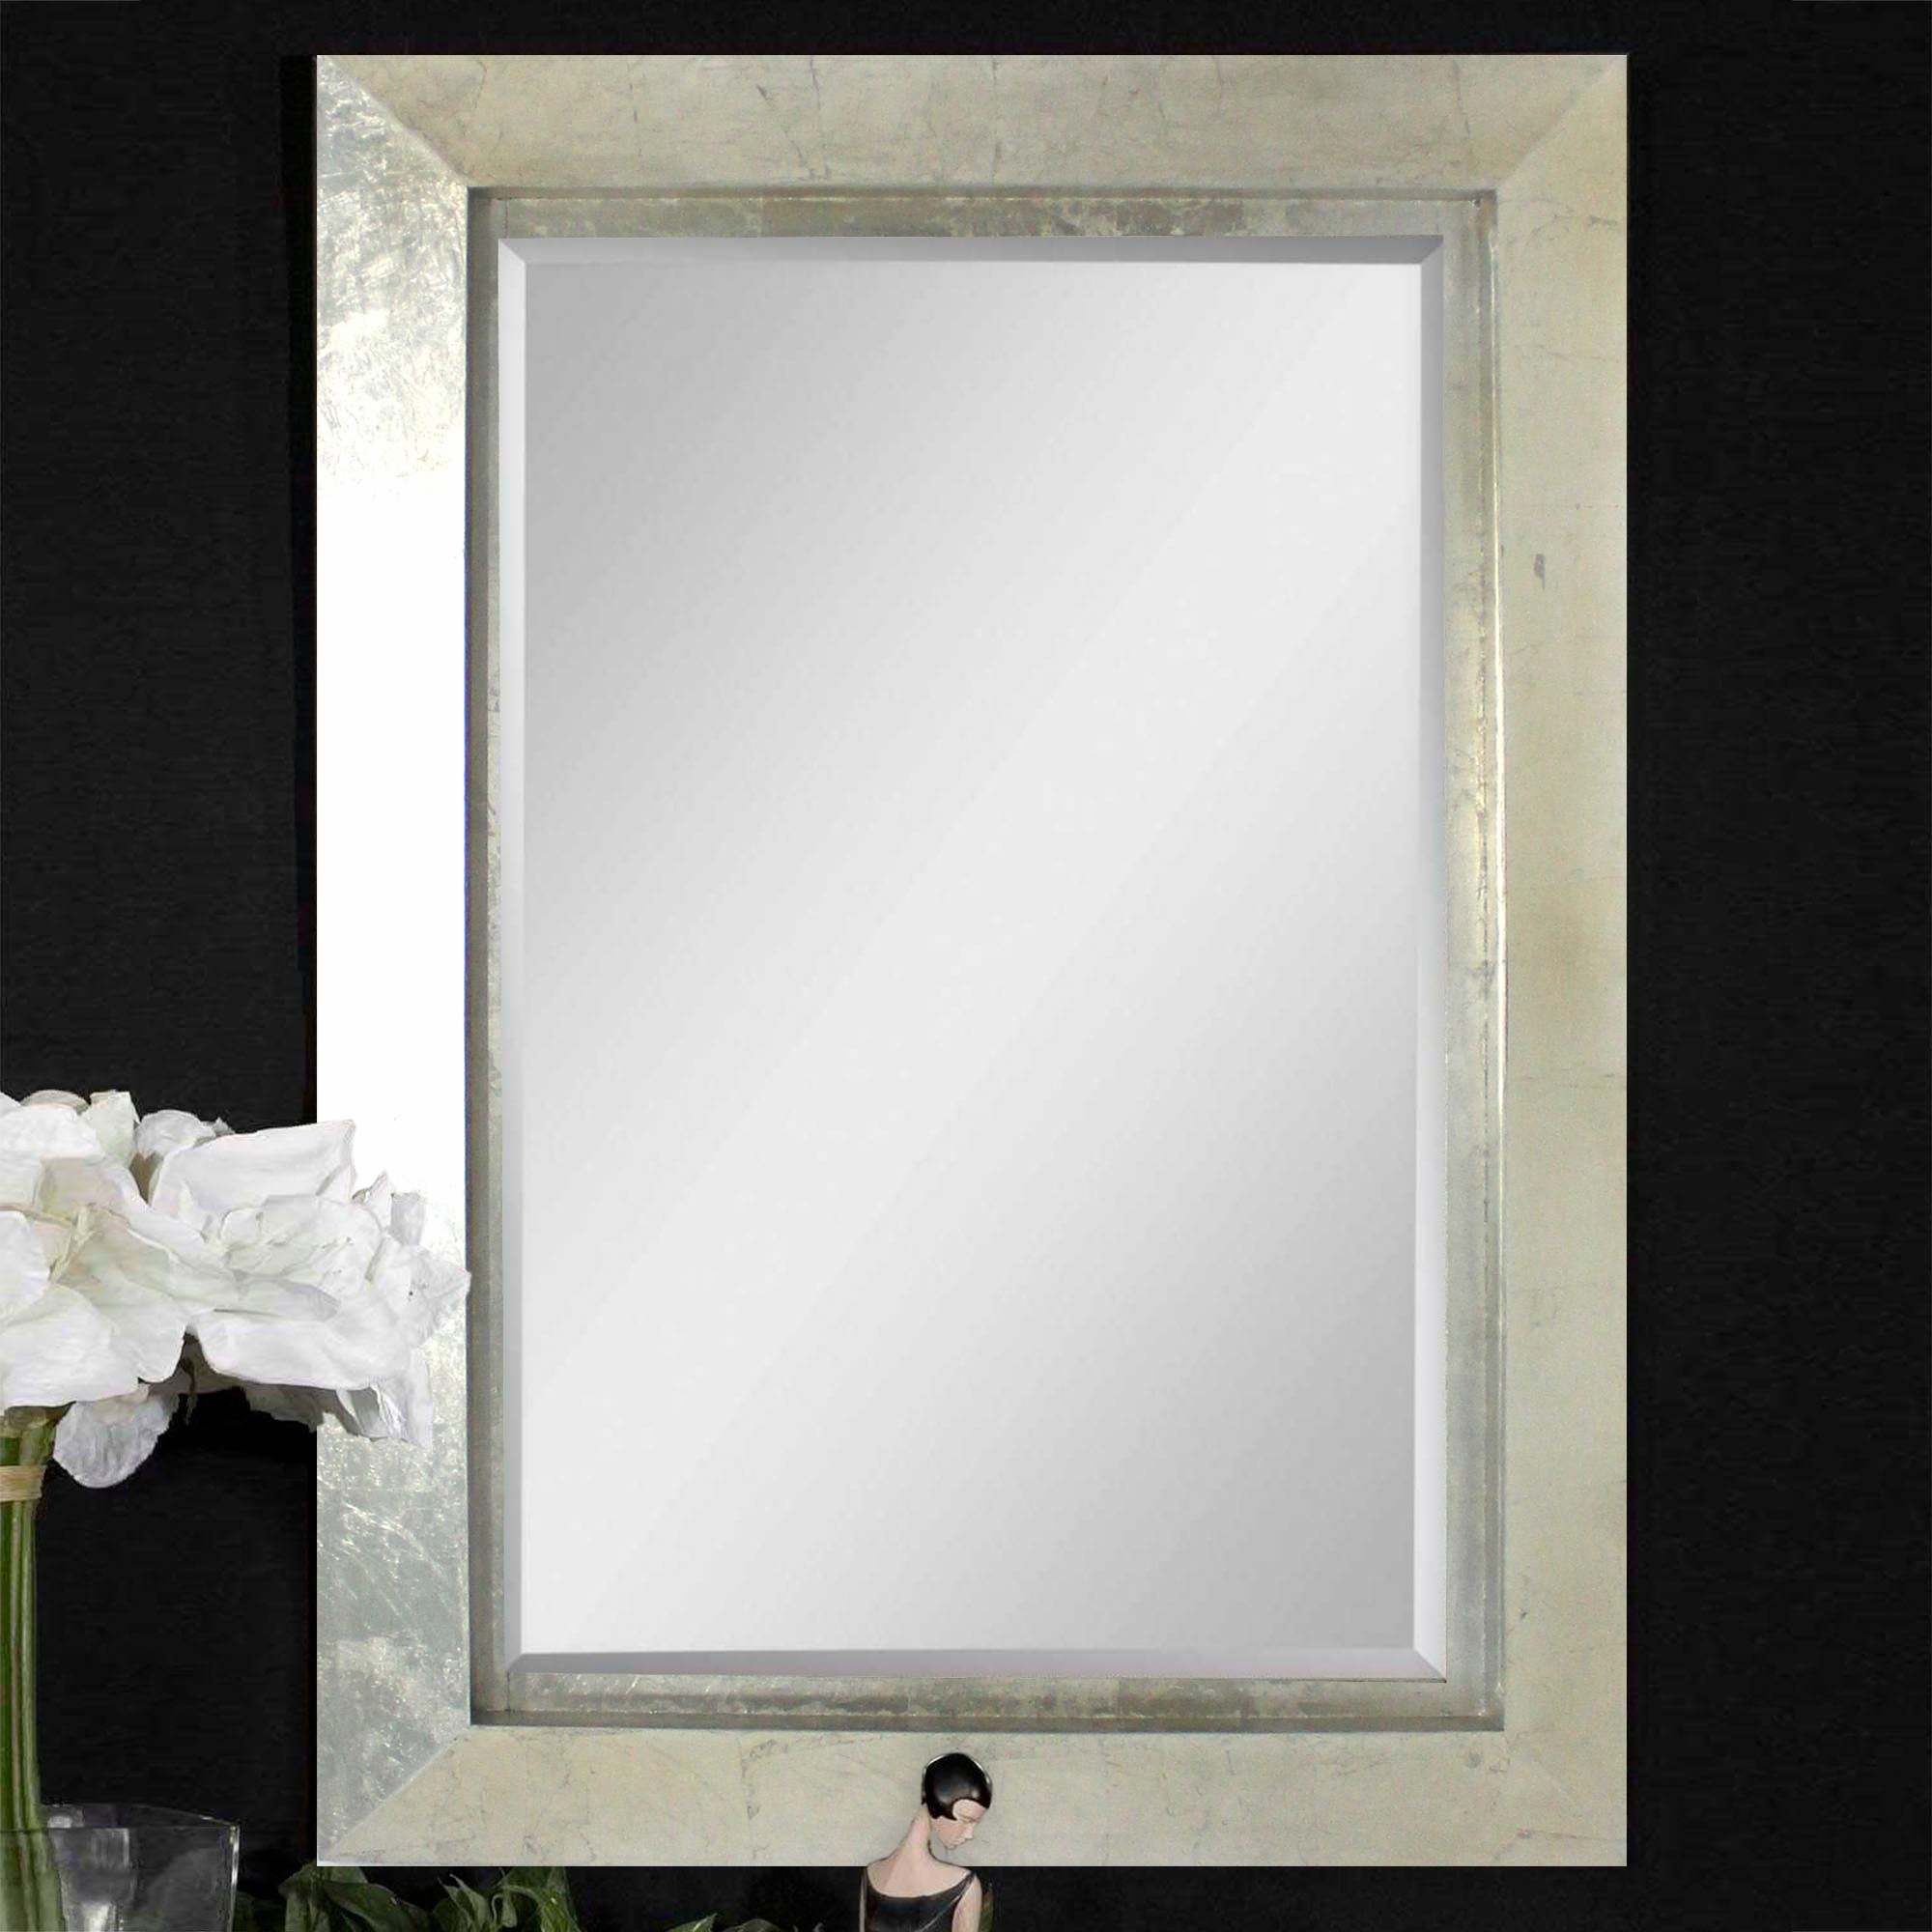 Contemporary Rectangular Silver Cosmetic Mirror - Teton Home WD-084